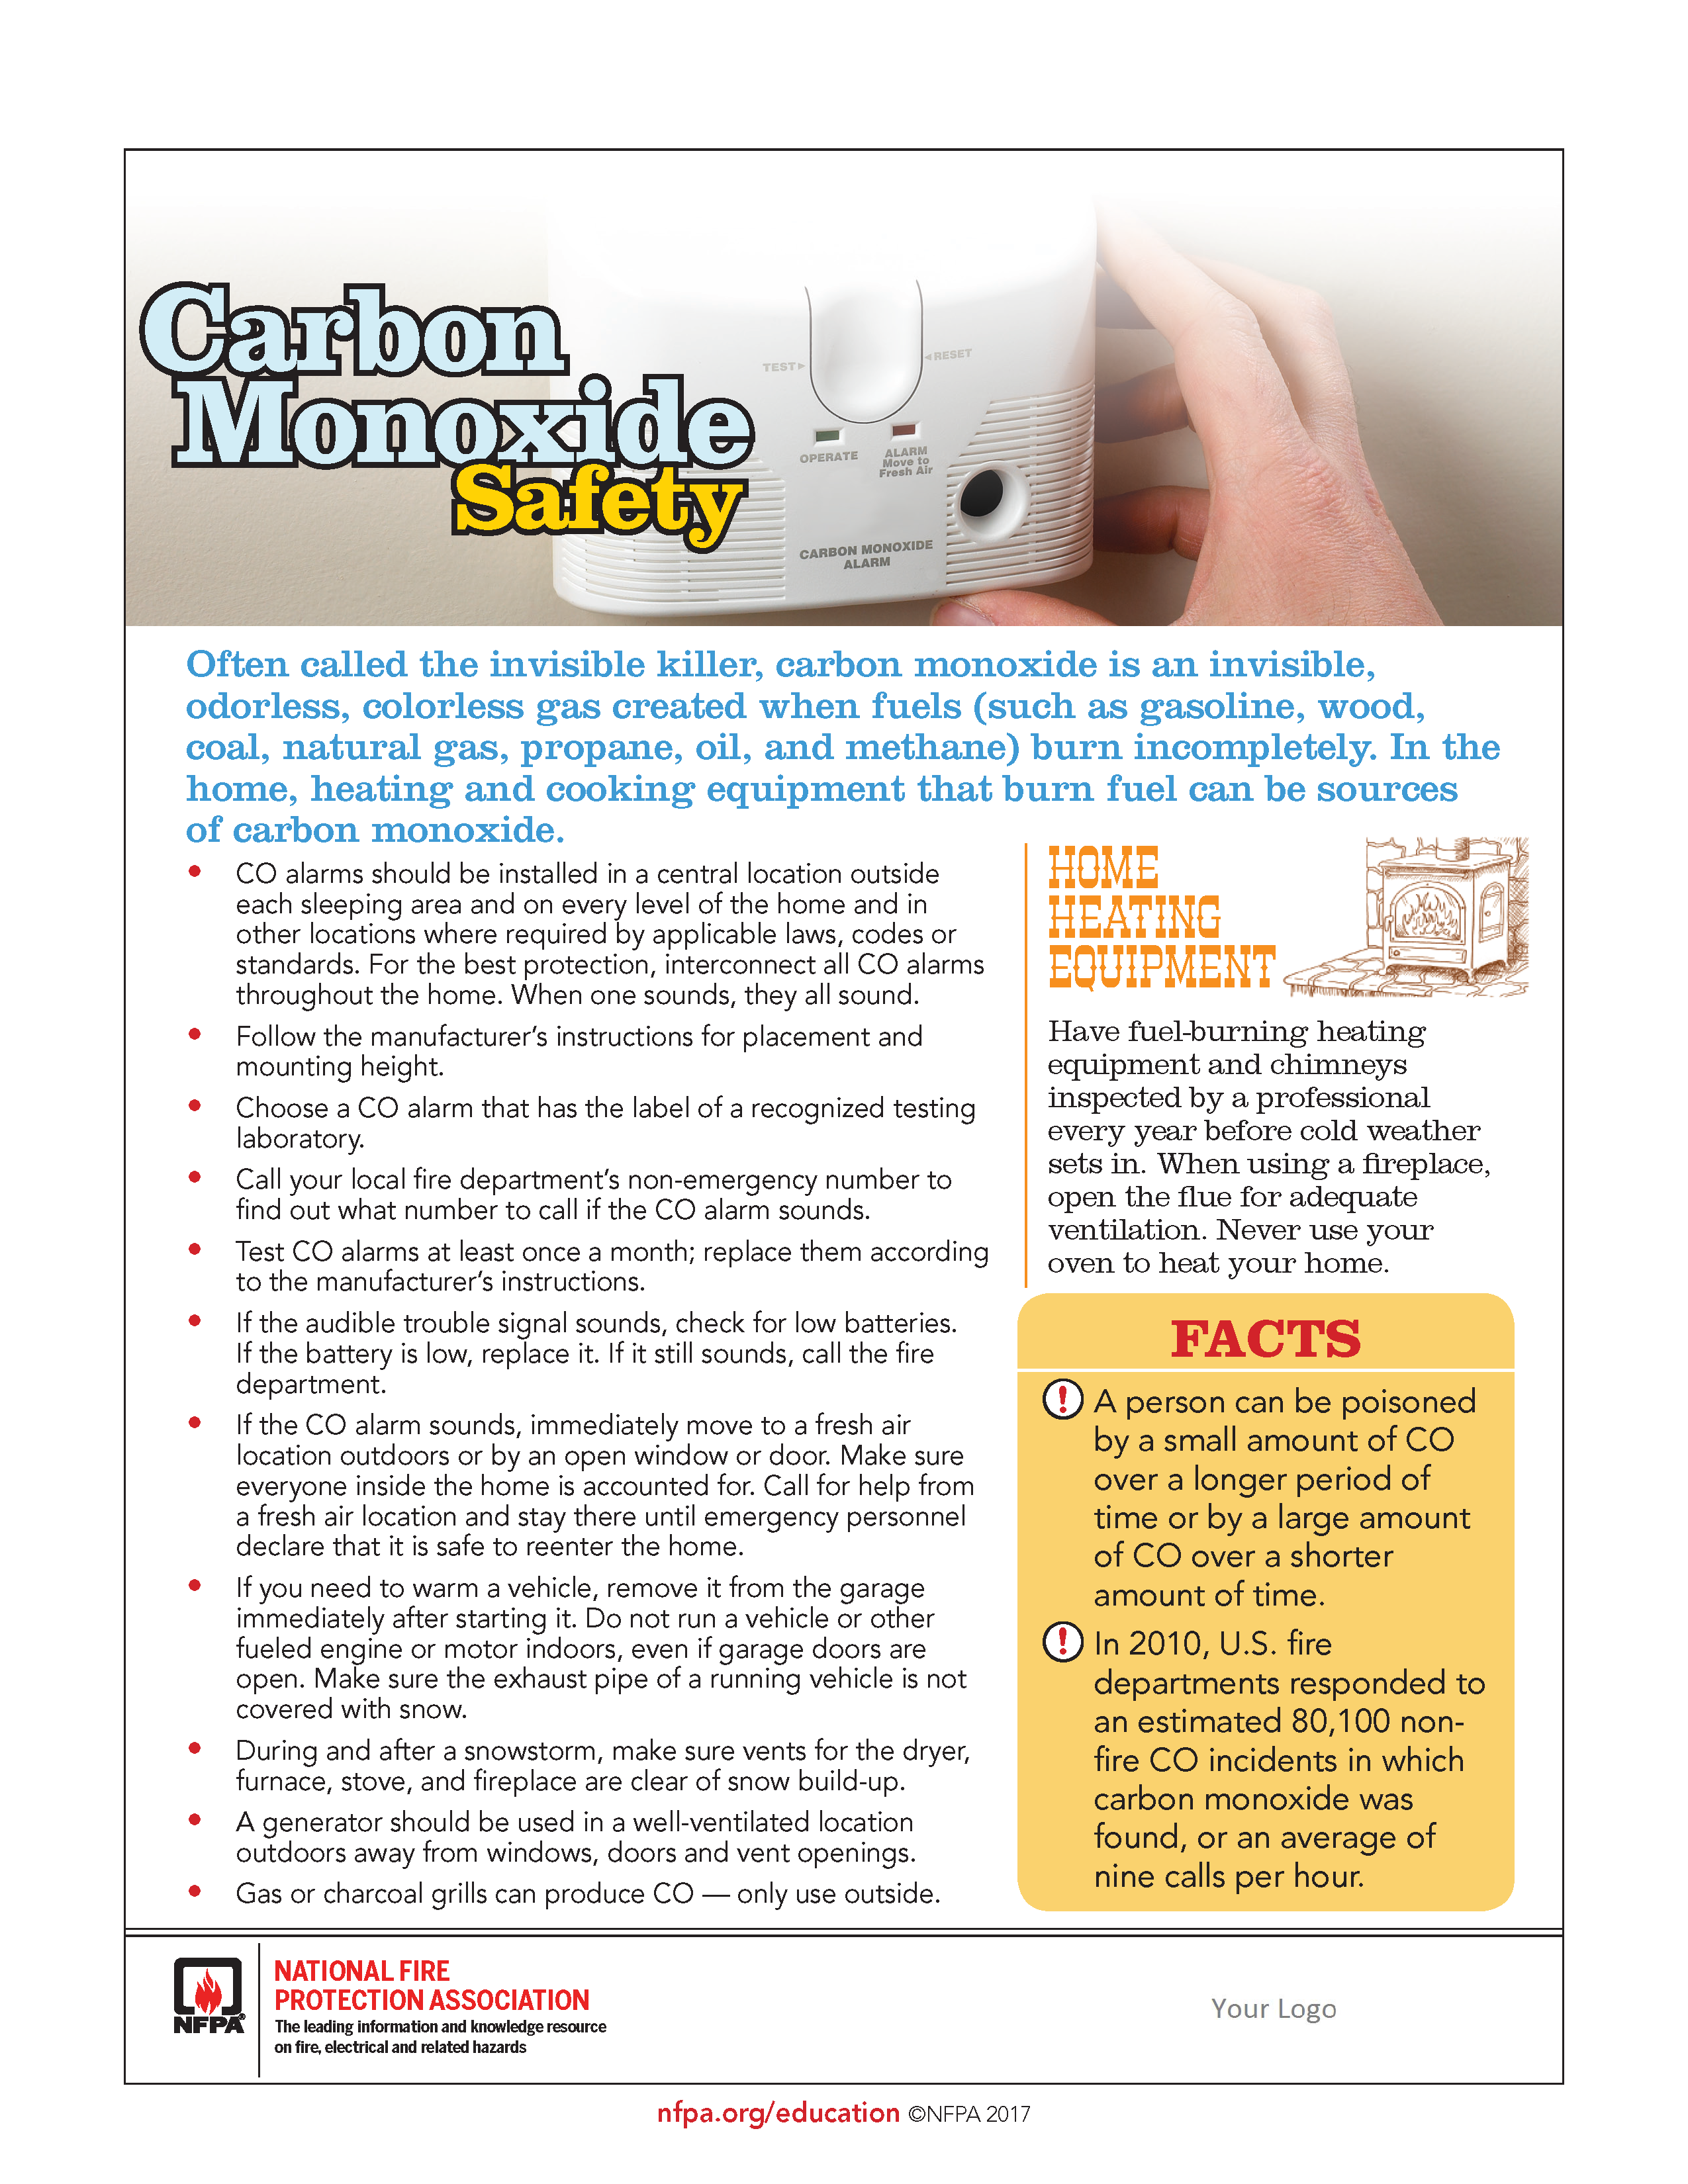 the township of verona new jersey carbon monoxide safety tips